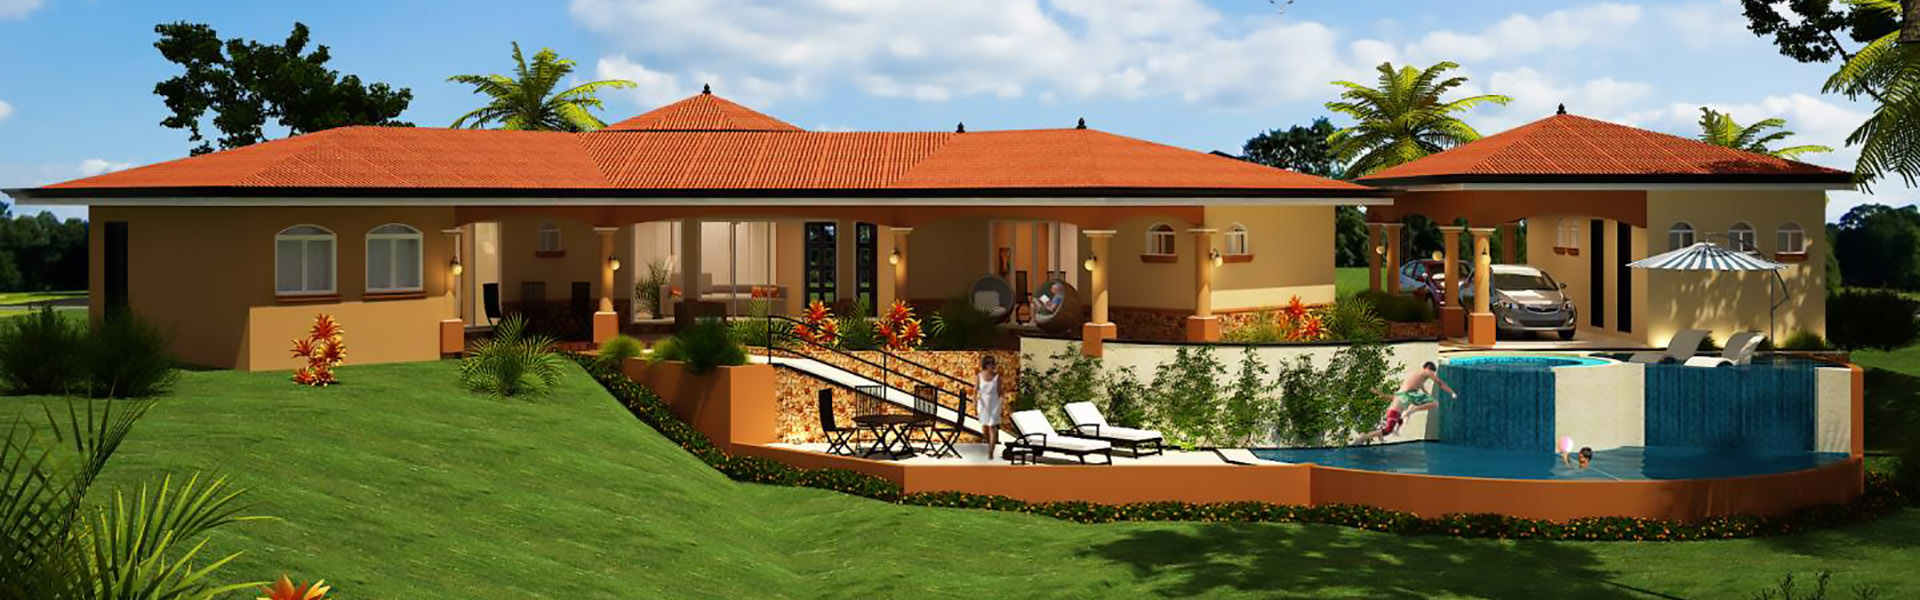 Costa Rica Home Builder